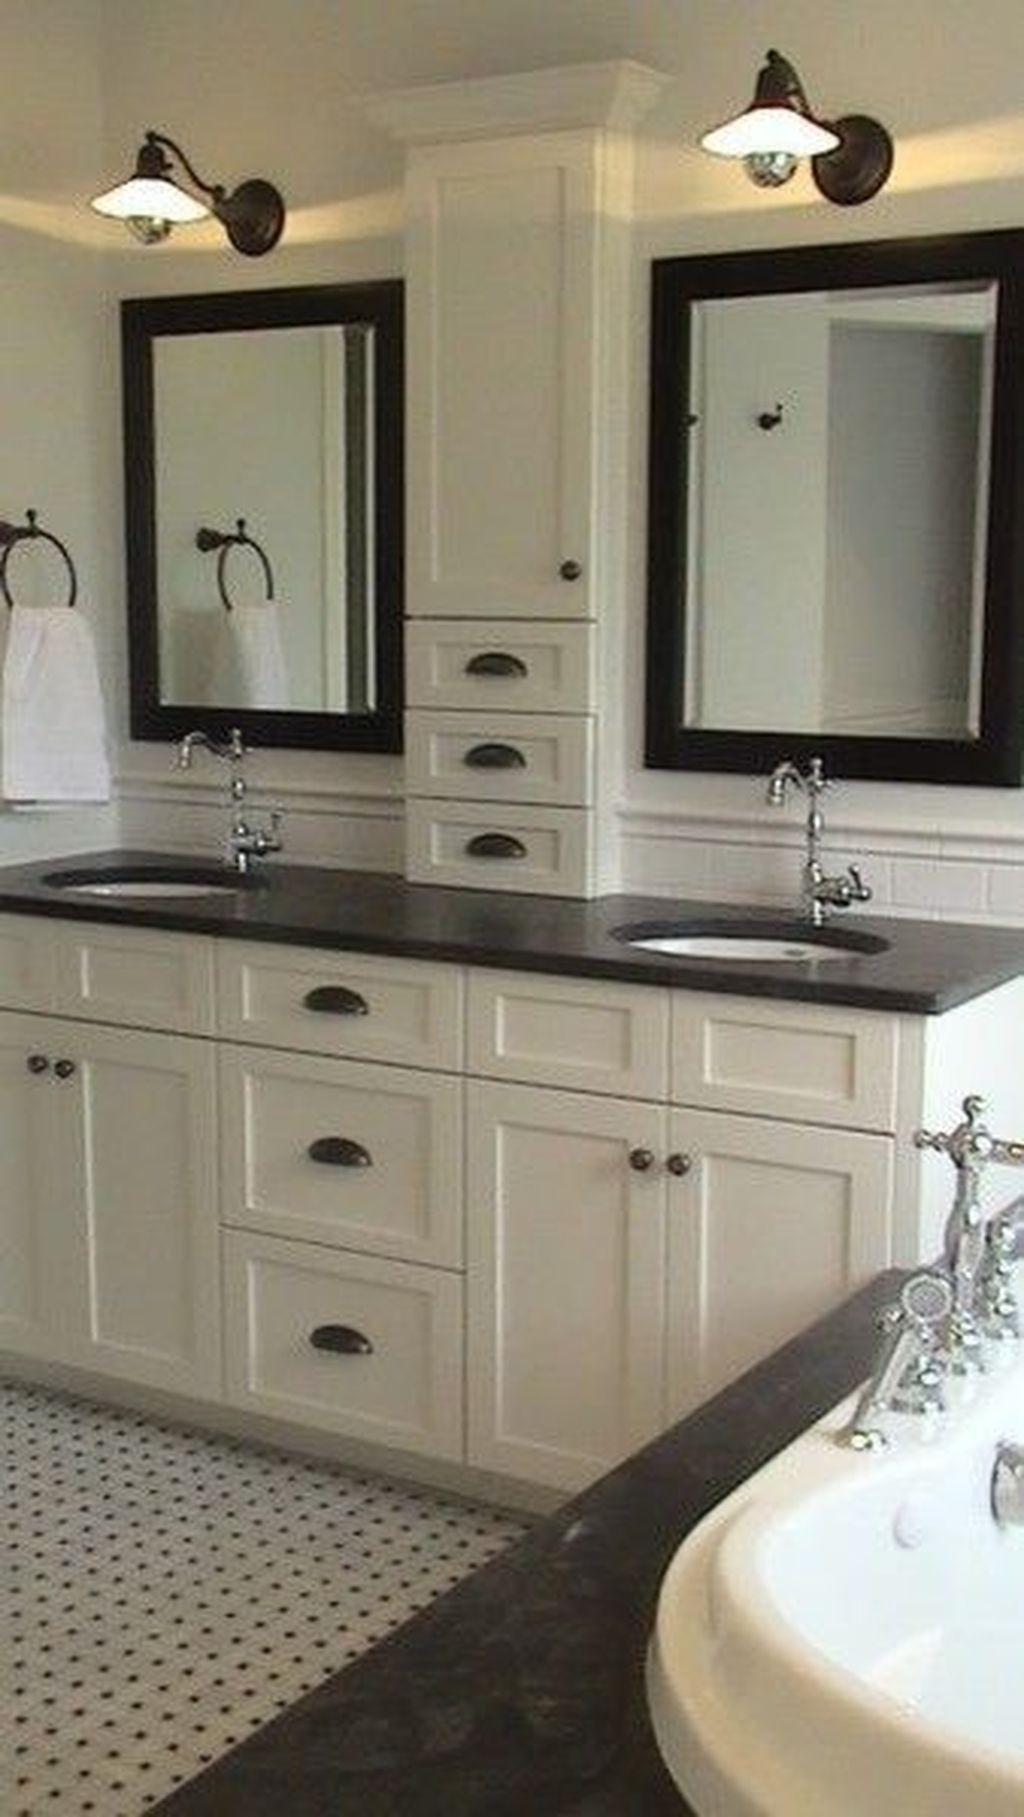 Big Mirror Stand Traditional Double Sink Bathroom Vanity Ideas On Foter